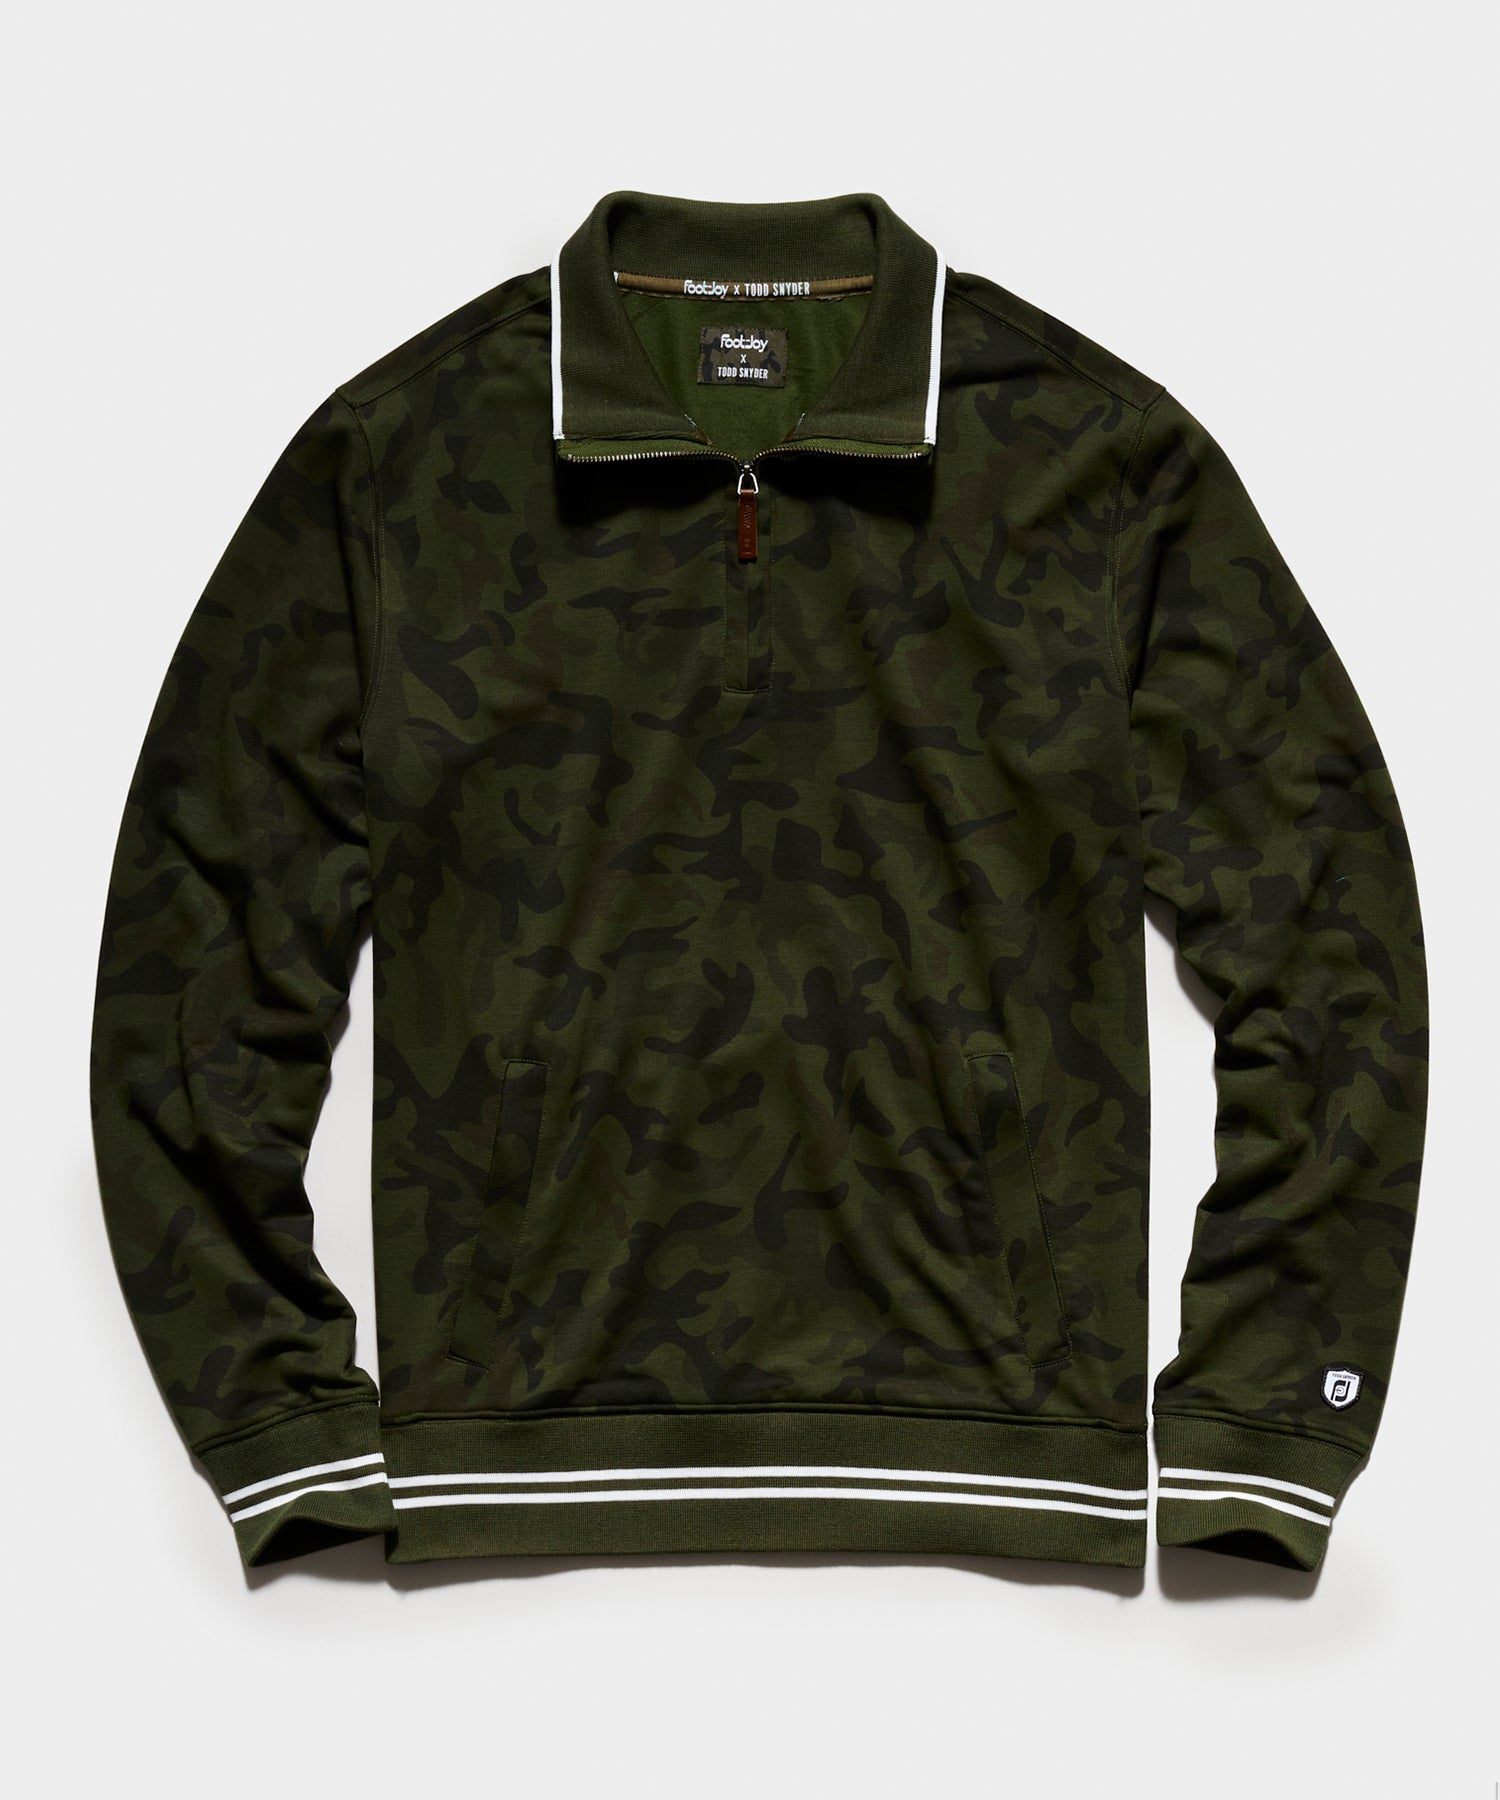 Footjoy x Todd Snyder 1/4 Zip Sweatshirt in Olive Camo